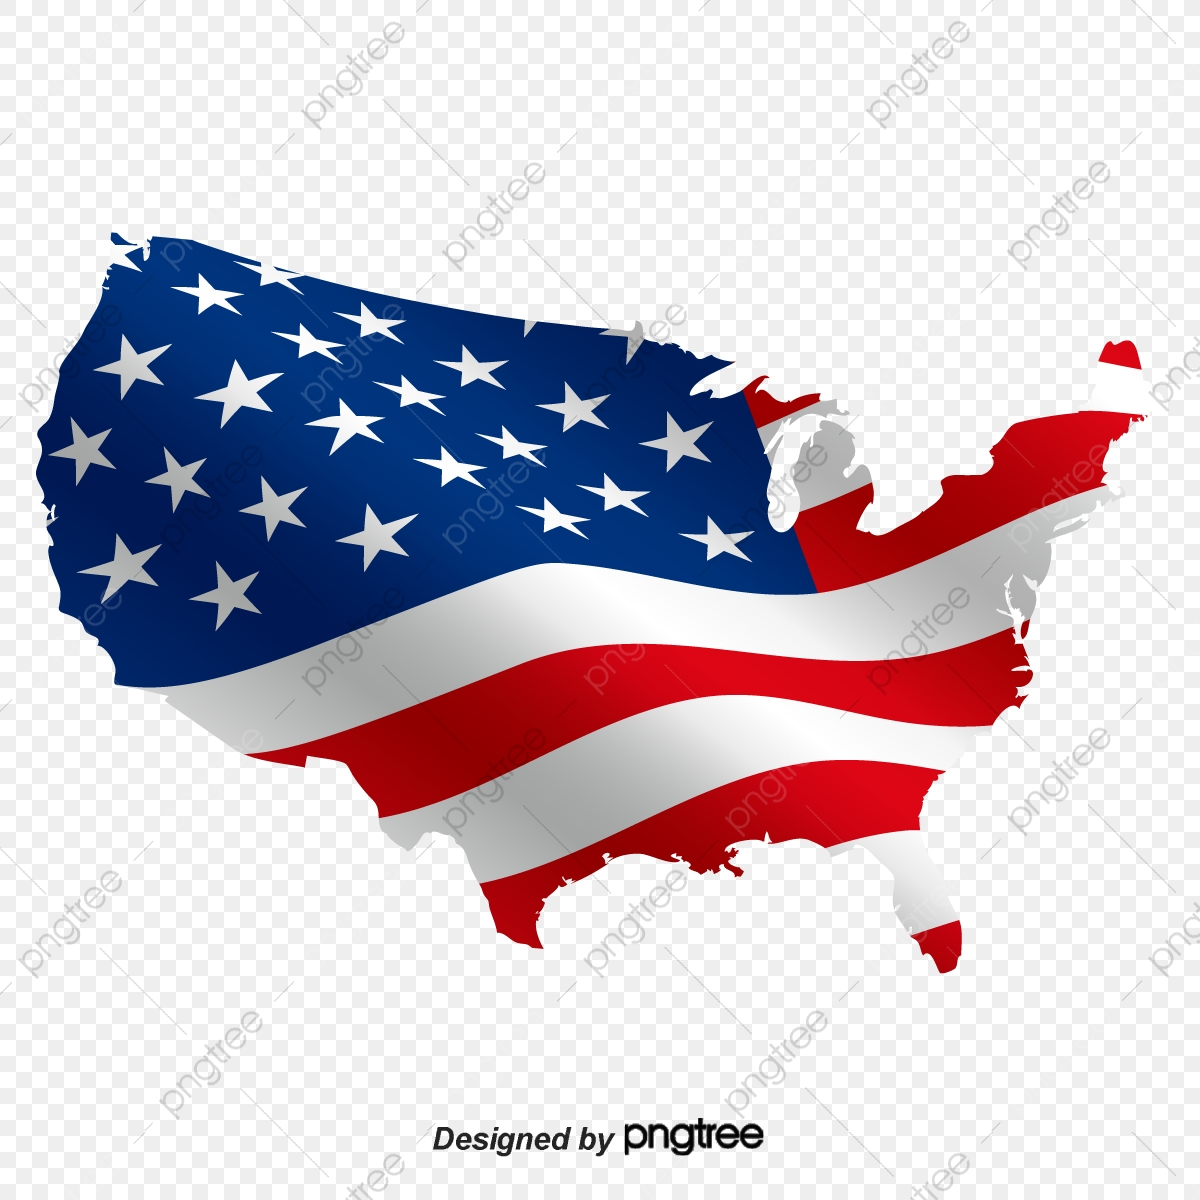 Free Waving Flag Cliparts, Download Free Clip Art, Free Clip Art on Clipart  Library